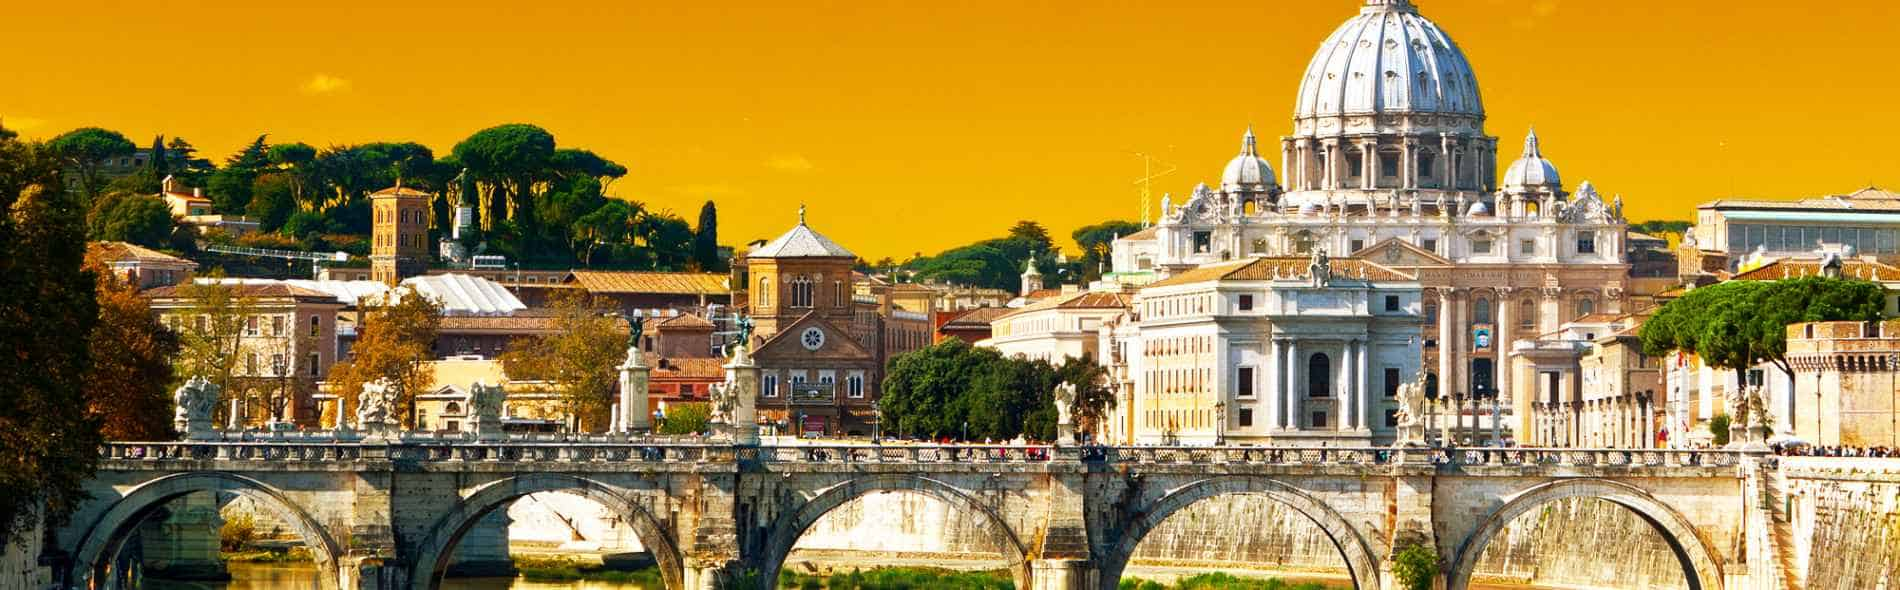 booking of professional tour guide in Rome.